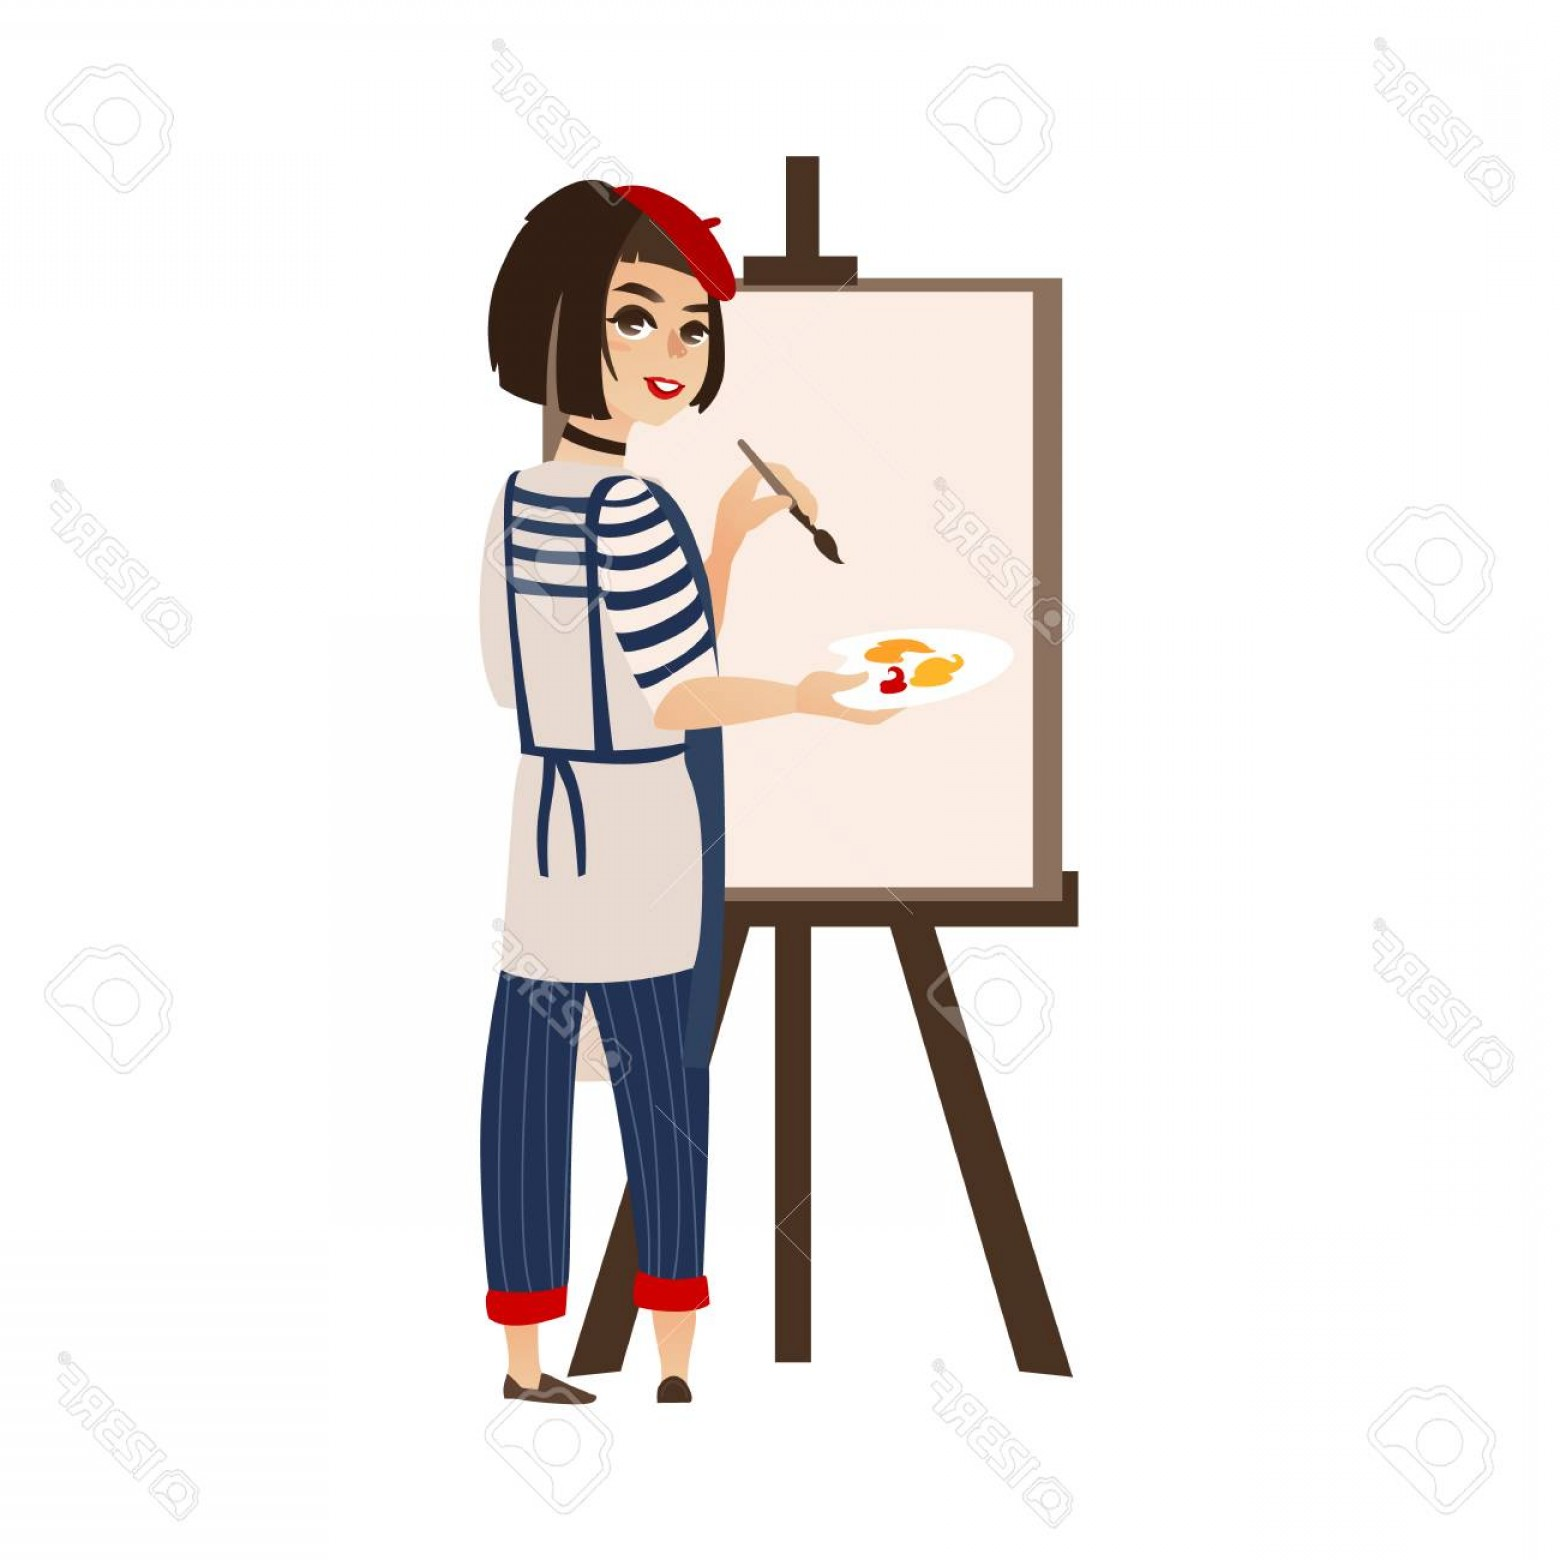 Woman Vector Toon Painter: Photostock Vector Vector Flat Cartoon Woman Artist Painter Wearing Beret Drawing On Easel Canvas French Parisian Style